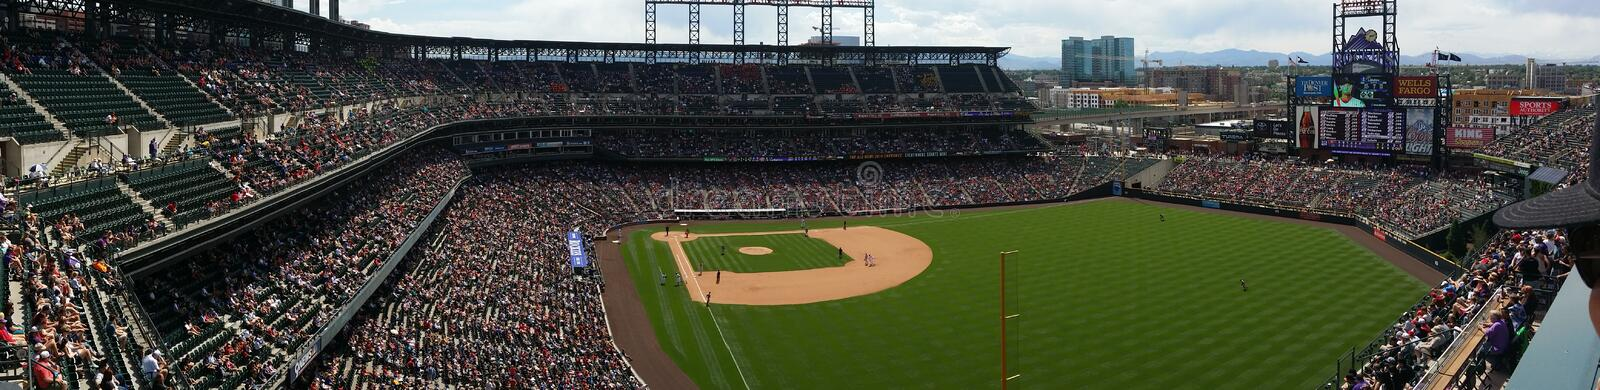 Colorado Rockies - Coors Field. Panoramic view of Colorado Rockies Game in Denver Colorado at Coors Field. Baseball and Summertime stock photo